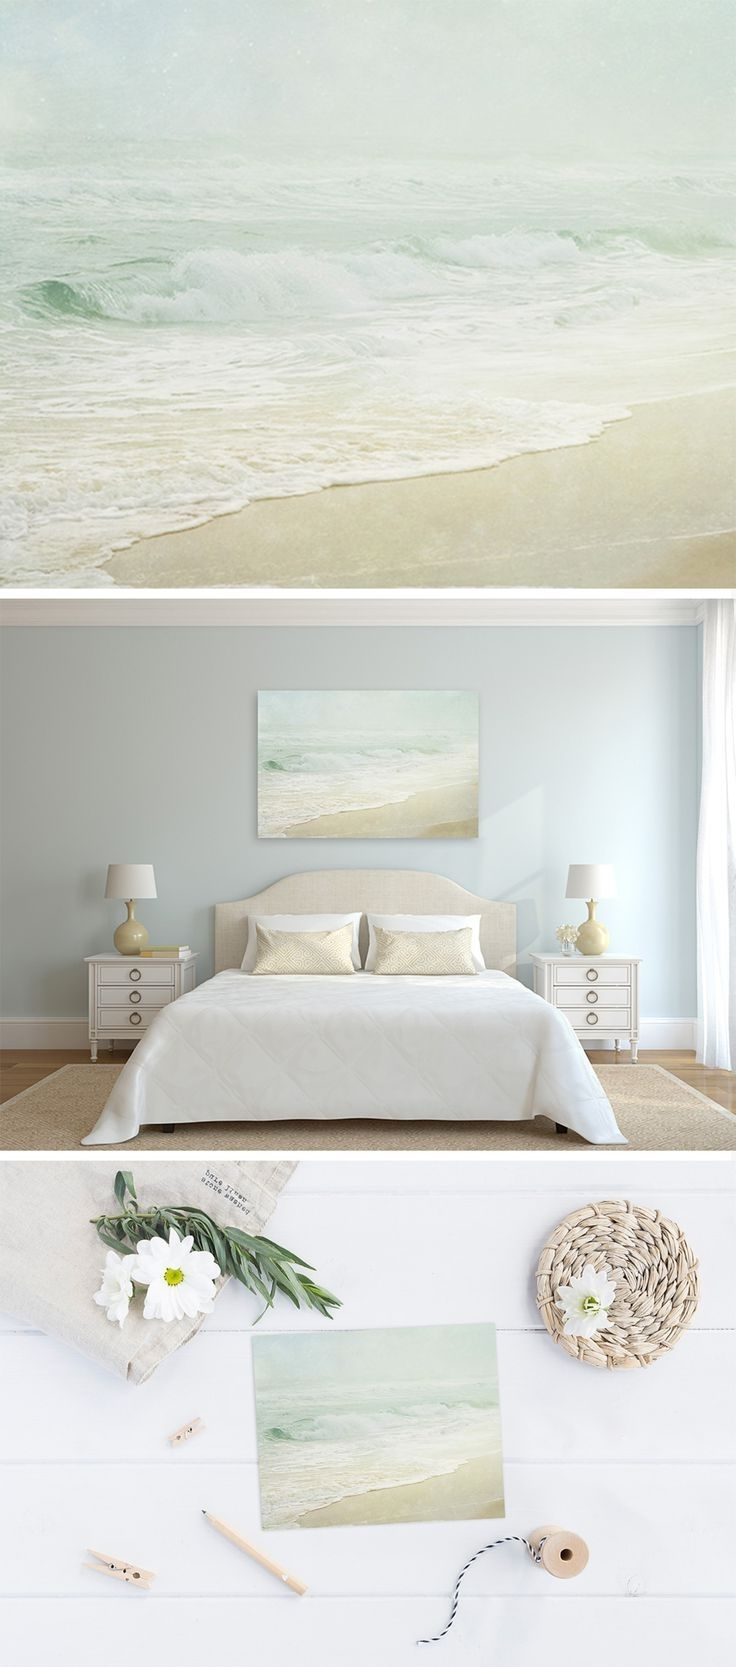 Well Known Foggy Beach – Coastal Wall Art For Your Beach Cottage Decor (View 8 of 15)